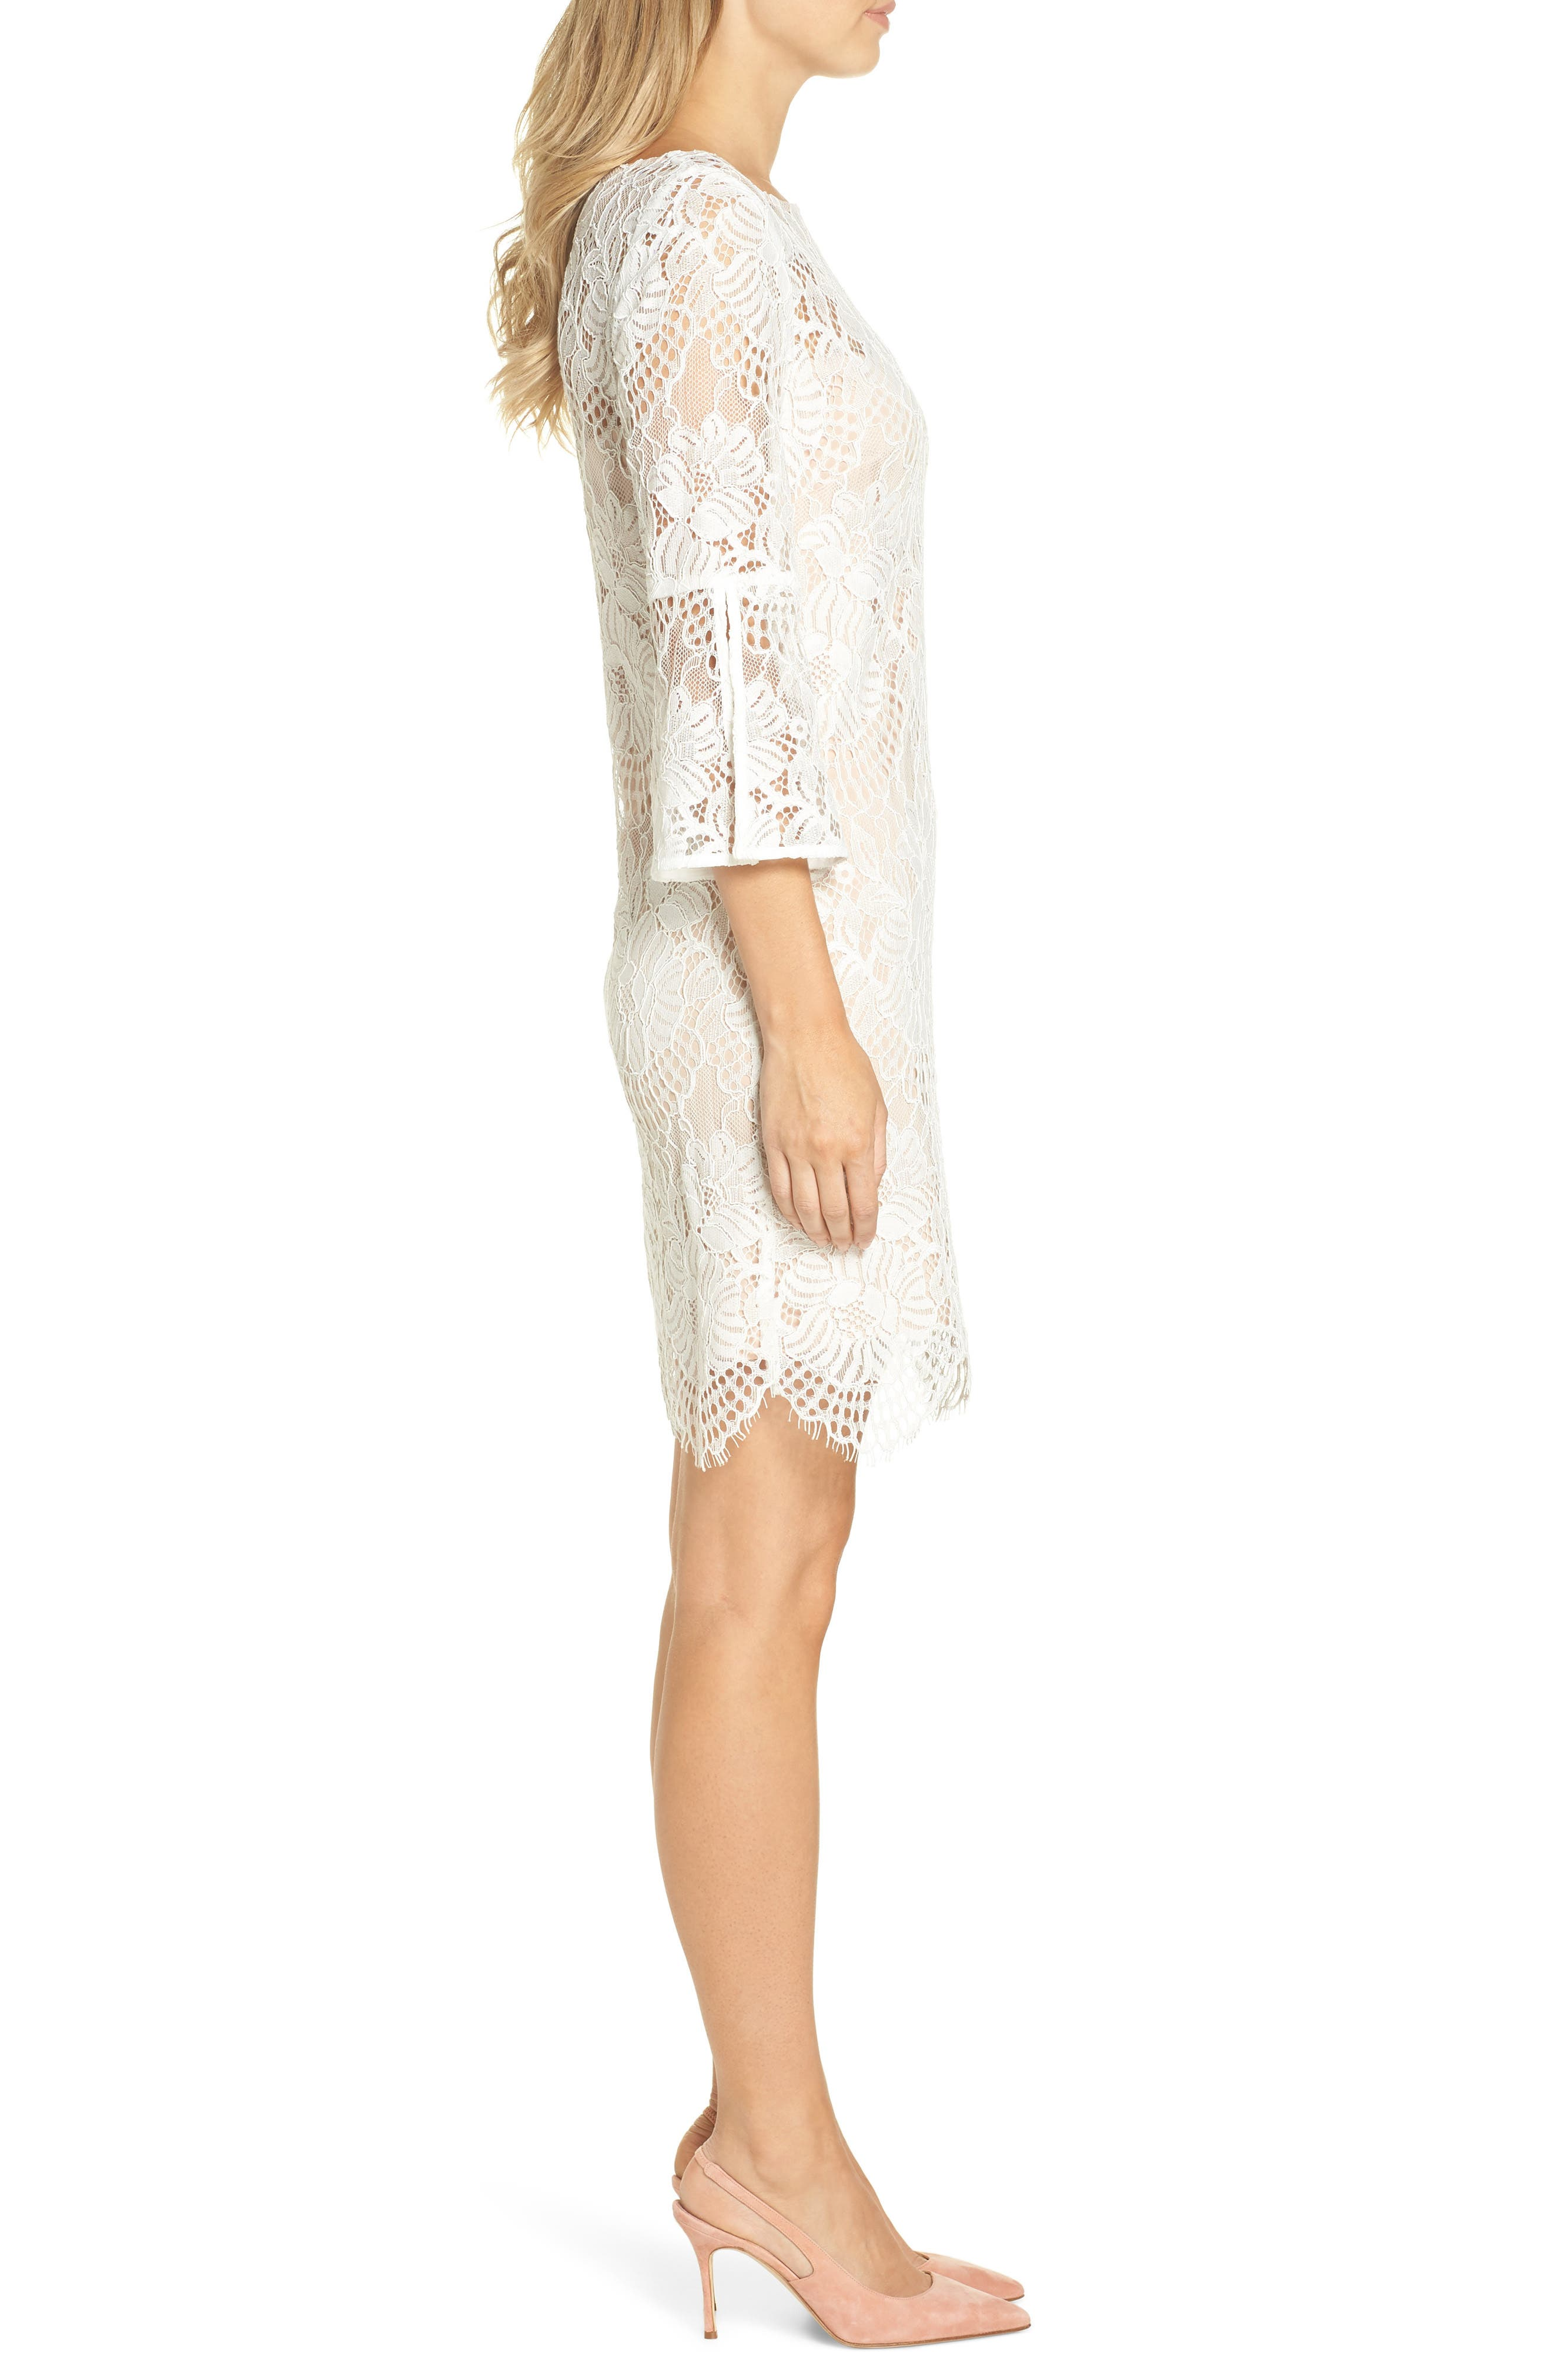 VINCE CAMUTO,                             Lace Shift Dress,                             Alternate thumbnail 3, color,                             IVORY